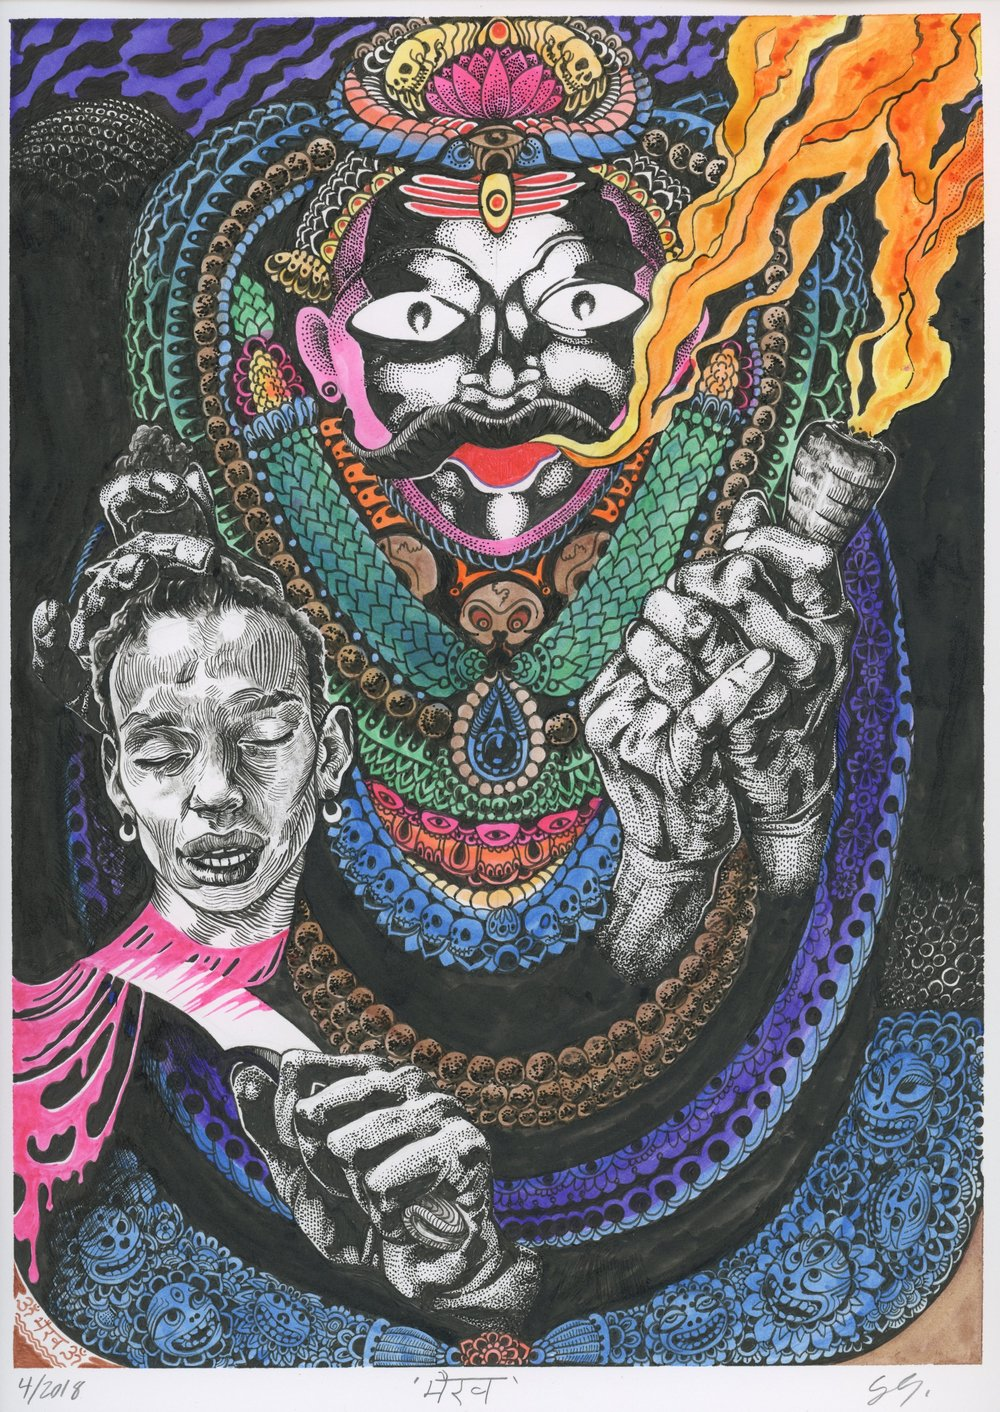 BLACK BHAIRAV WHITH CHILLUM AND SEVERED HEAD OF THE ARTIST